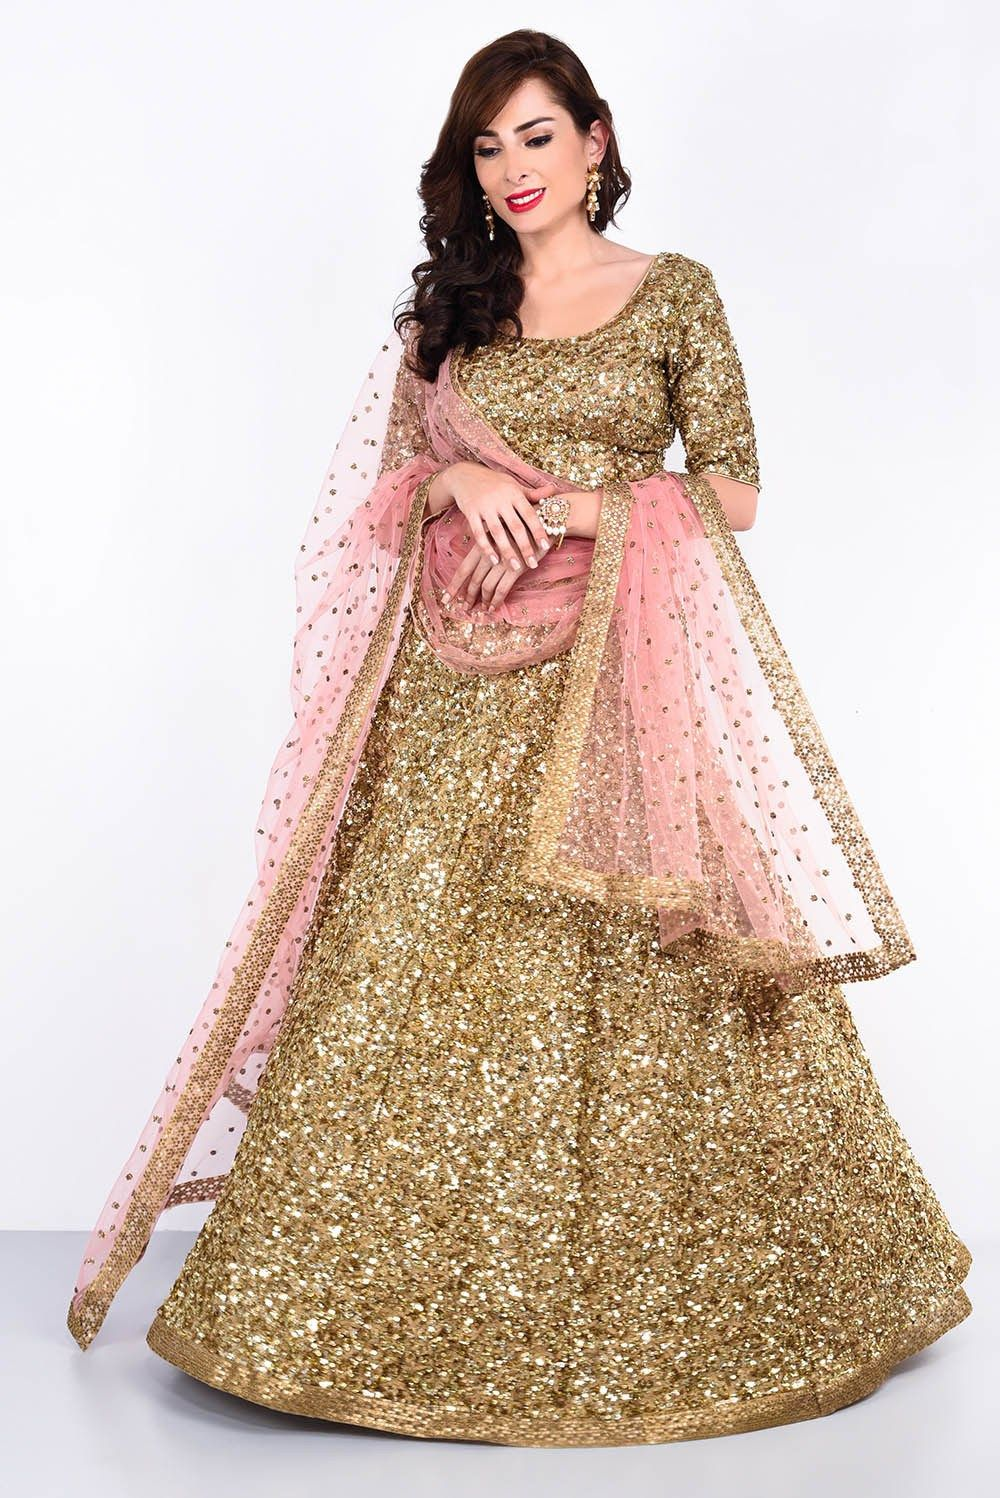 1c3f34ecdcc A gorgeous all gold sequins lehenga set. Its for just 8k on rent. Perfect  wedding pick for the sister of the bride groom  Frugal2Fab